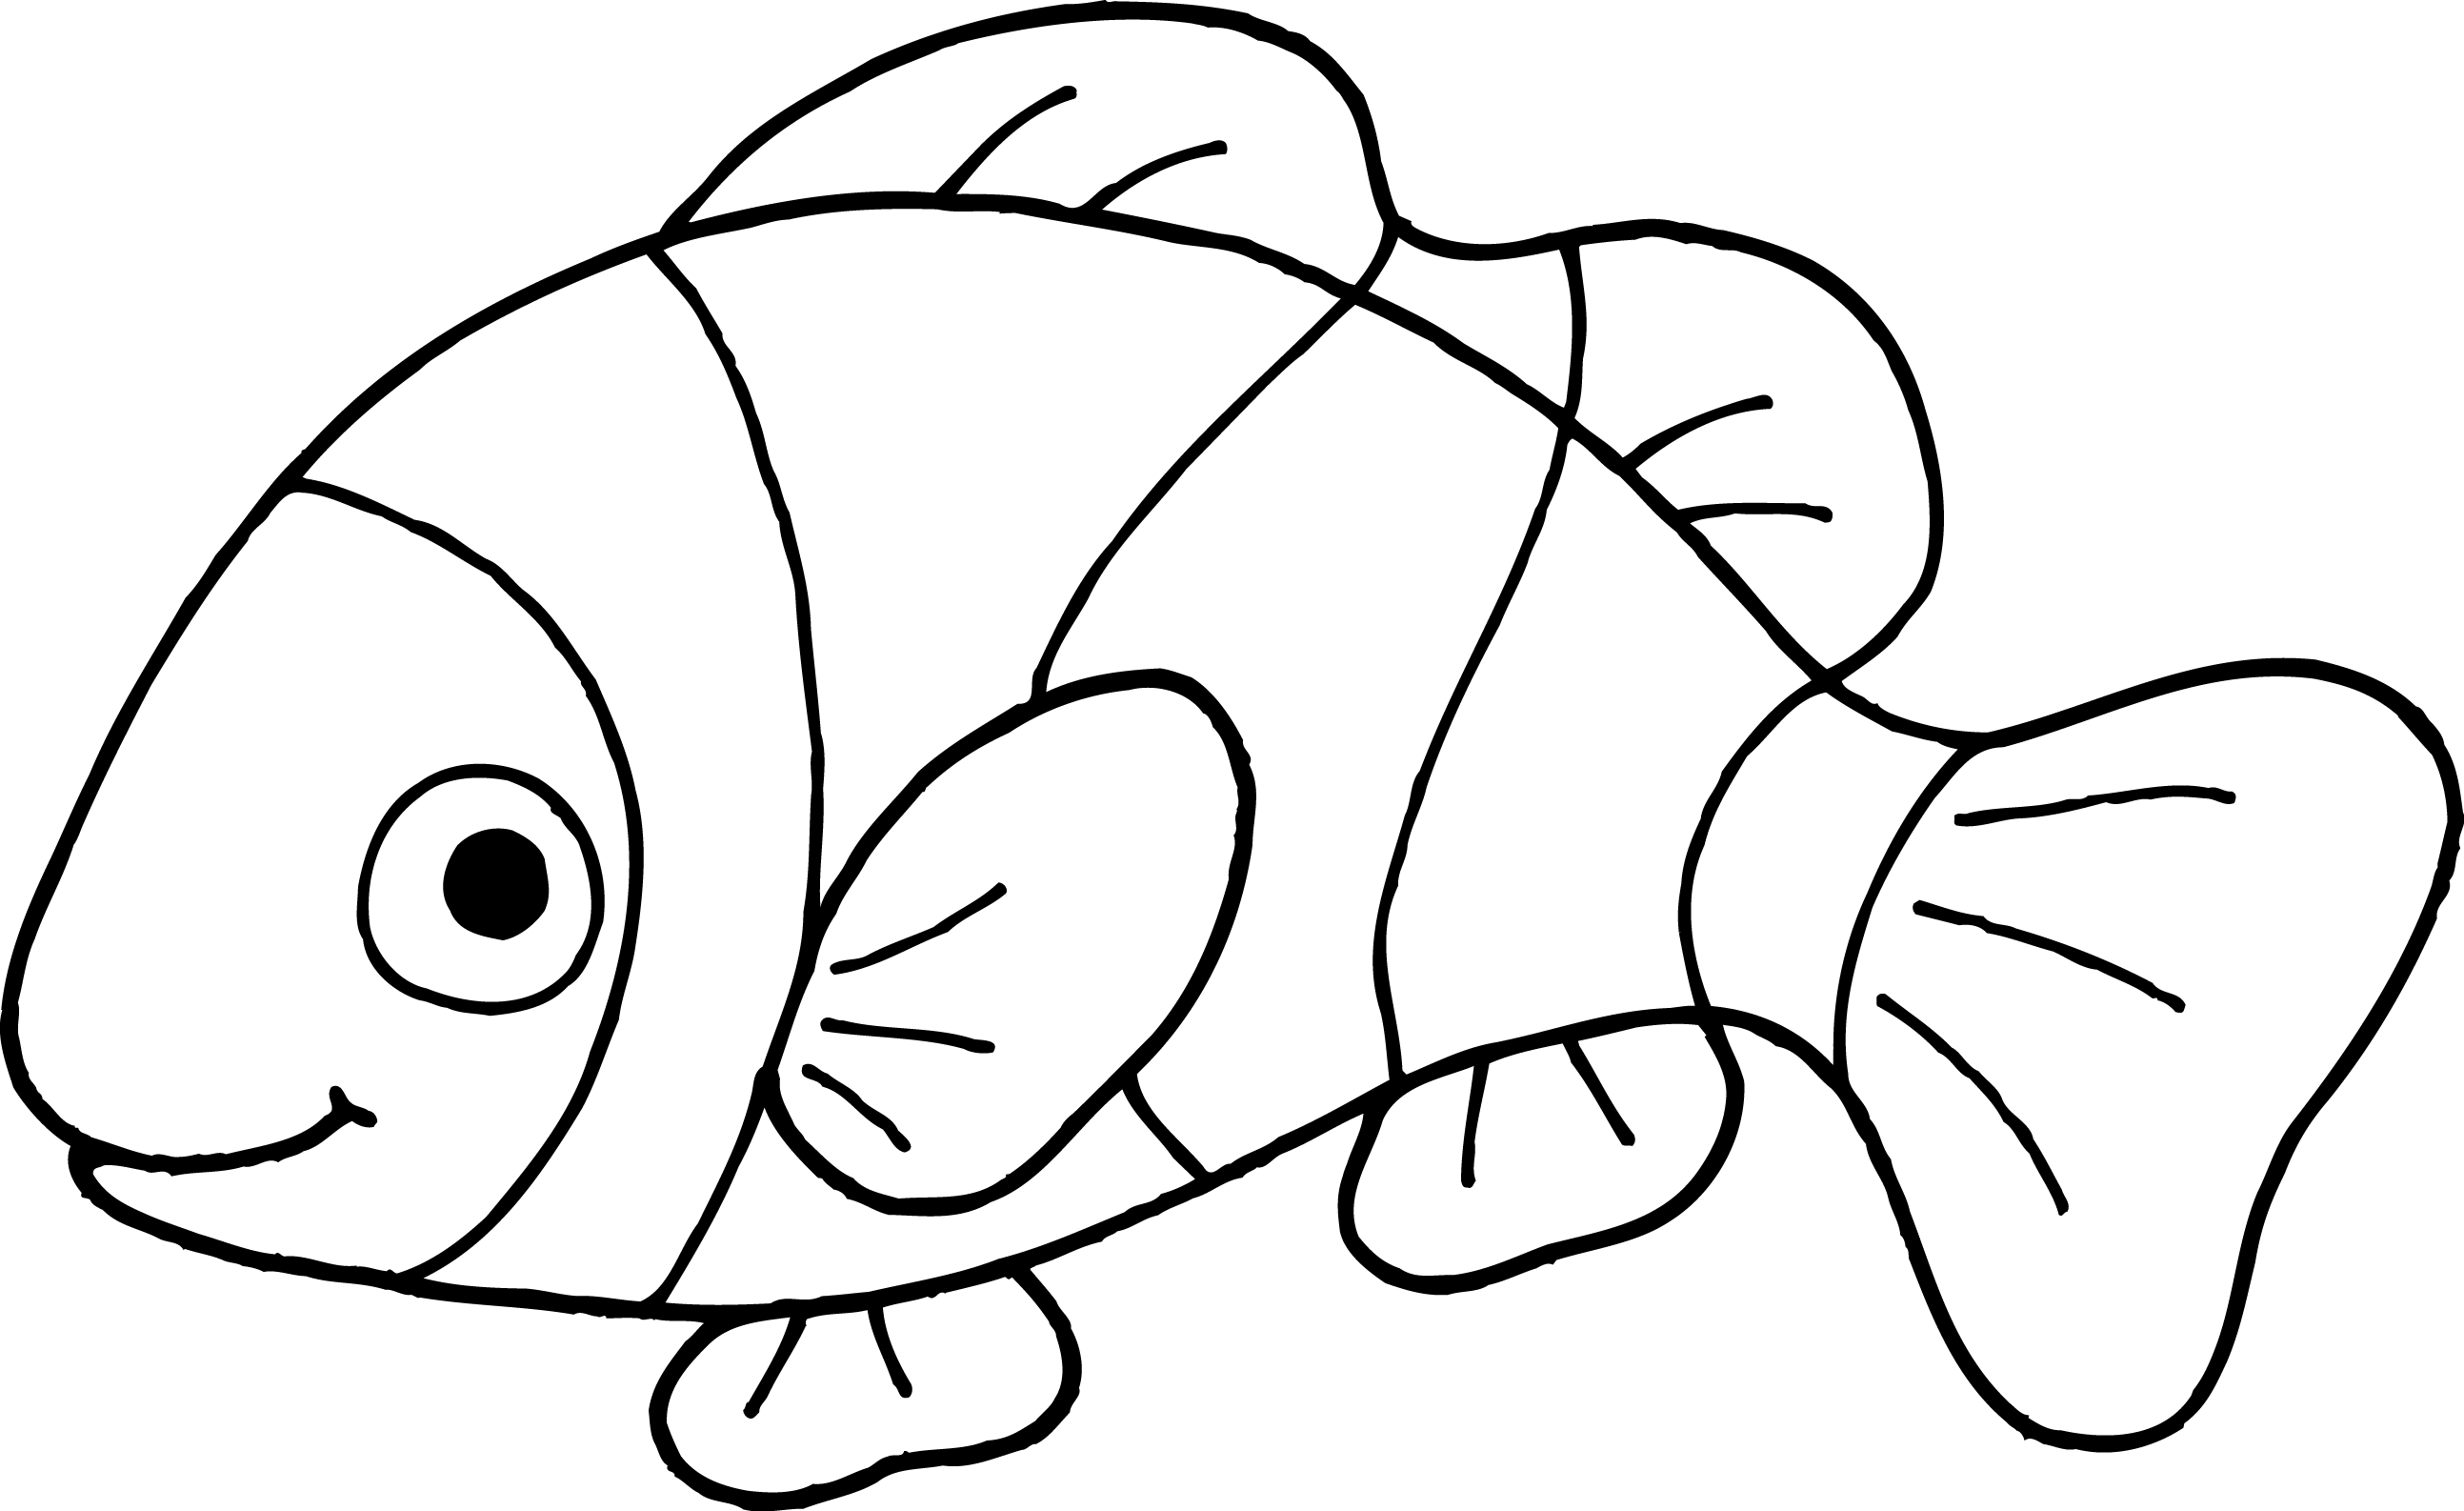 Free Finding Nemo Black And White, Download Free Clip Art.